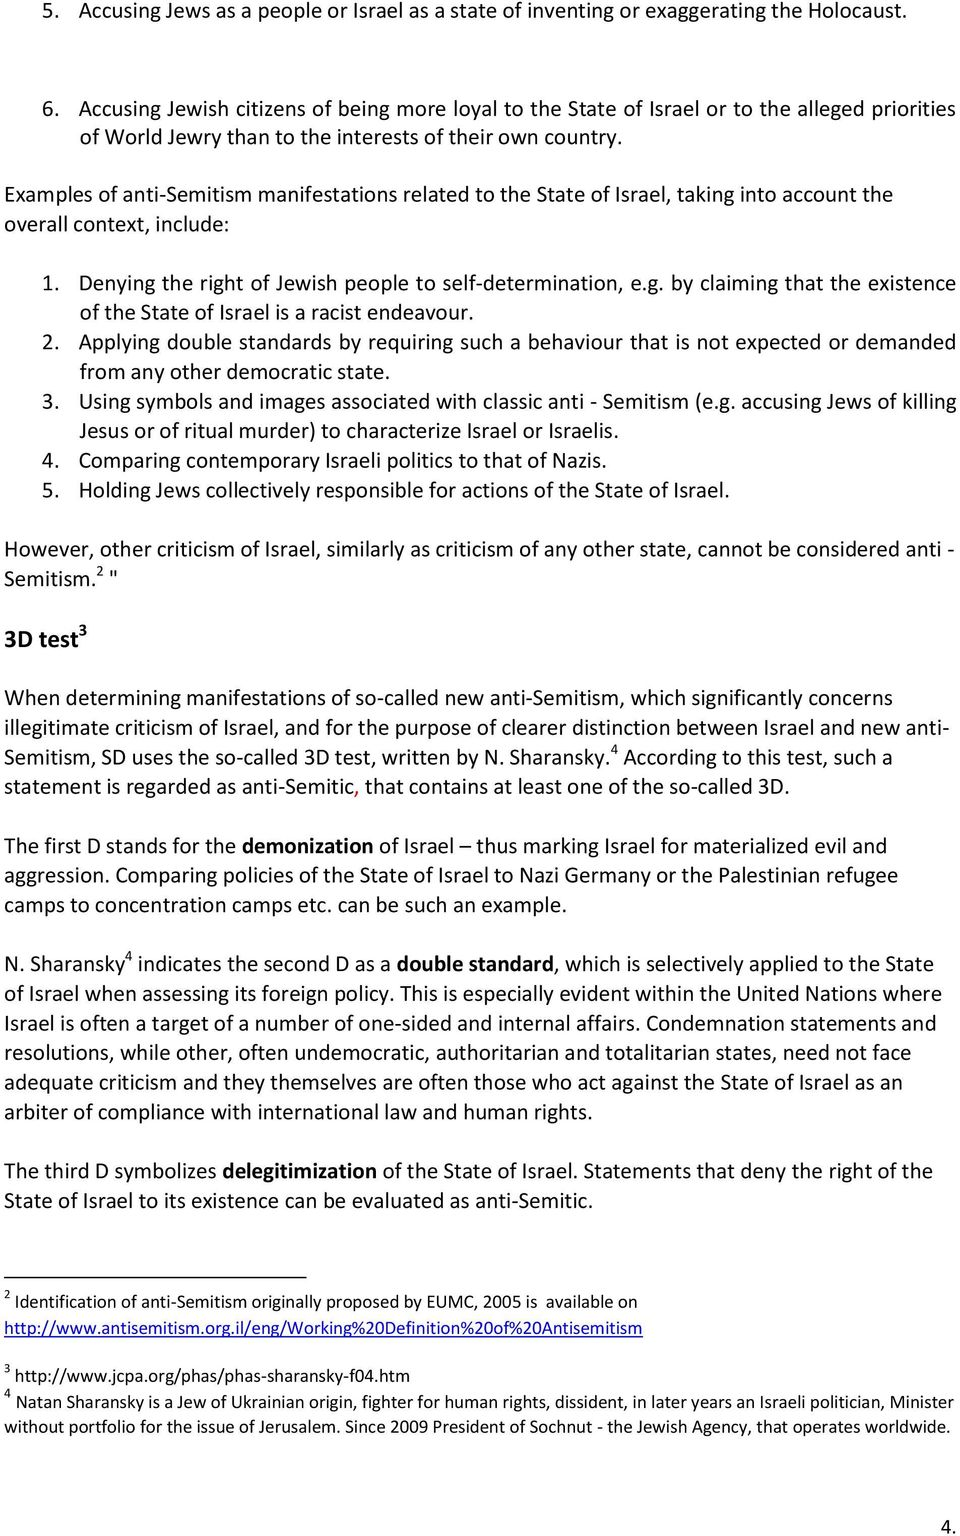 Examples of anti-semitism manifestations related to the State of Israel, taking into account the overall context, include: 1. Denying the right of Jewish people to self-determination, e.g. by claiming that the existence of the State of Israel is a racist endeavour.